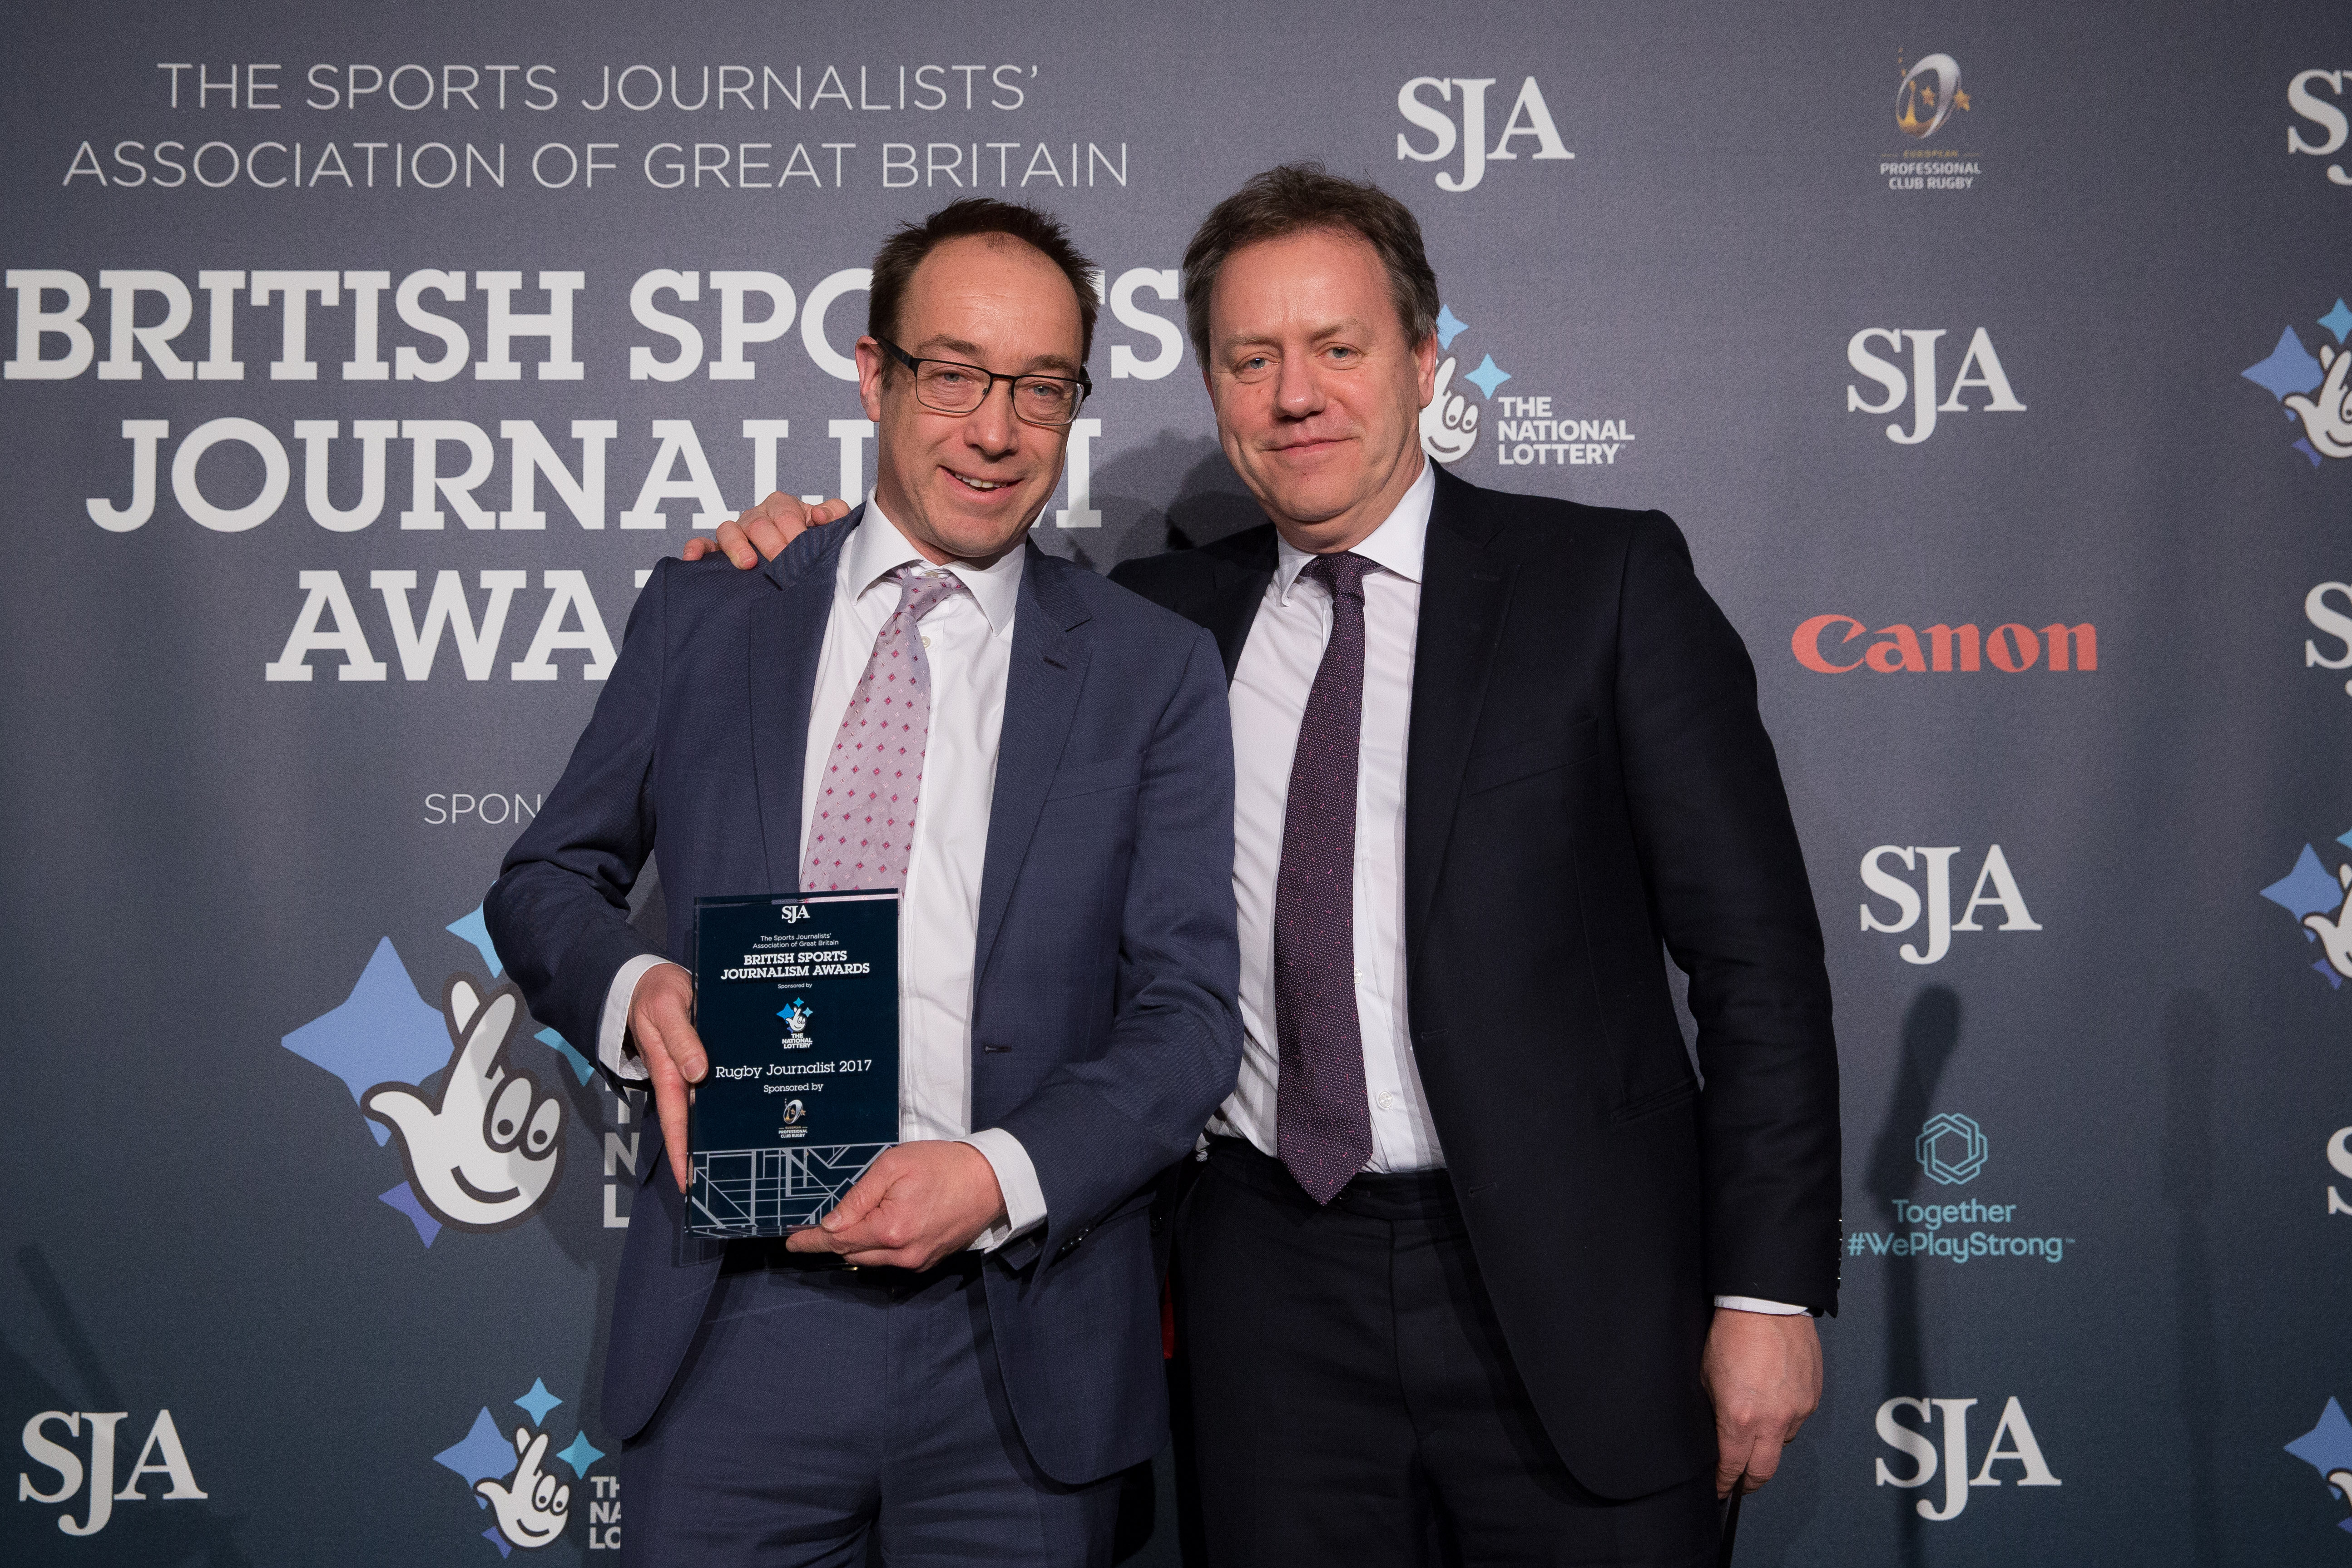 EPCR extend sponsorship of SJA rugby union writer of the year award